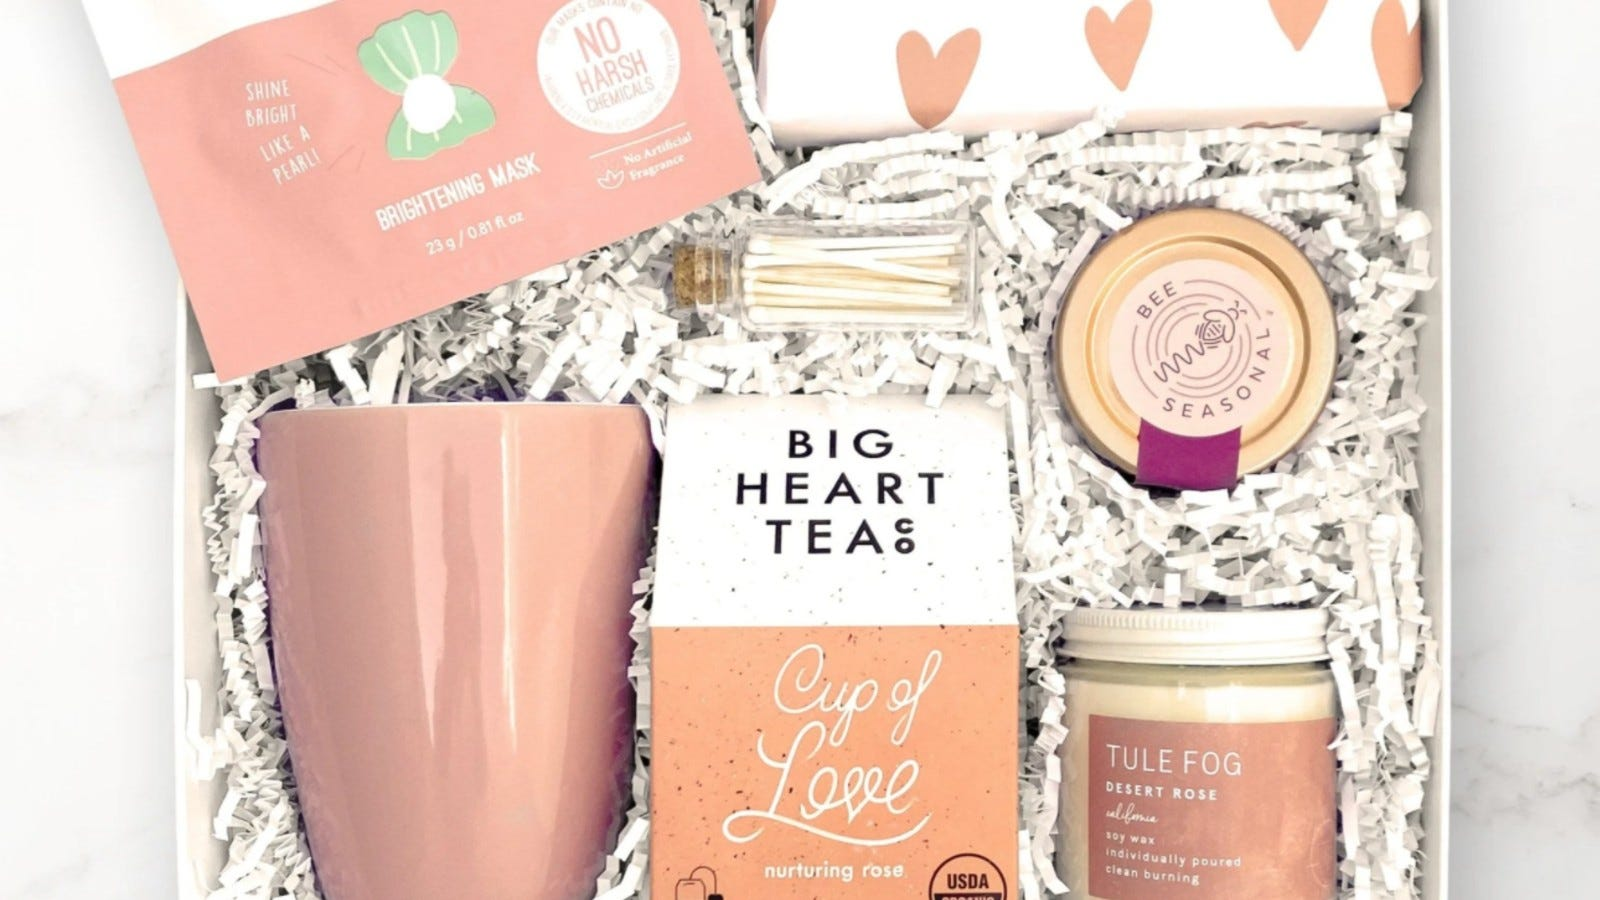 a pink and white gift box with a mug, matches, ta, candle, and honey inside